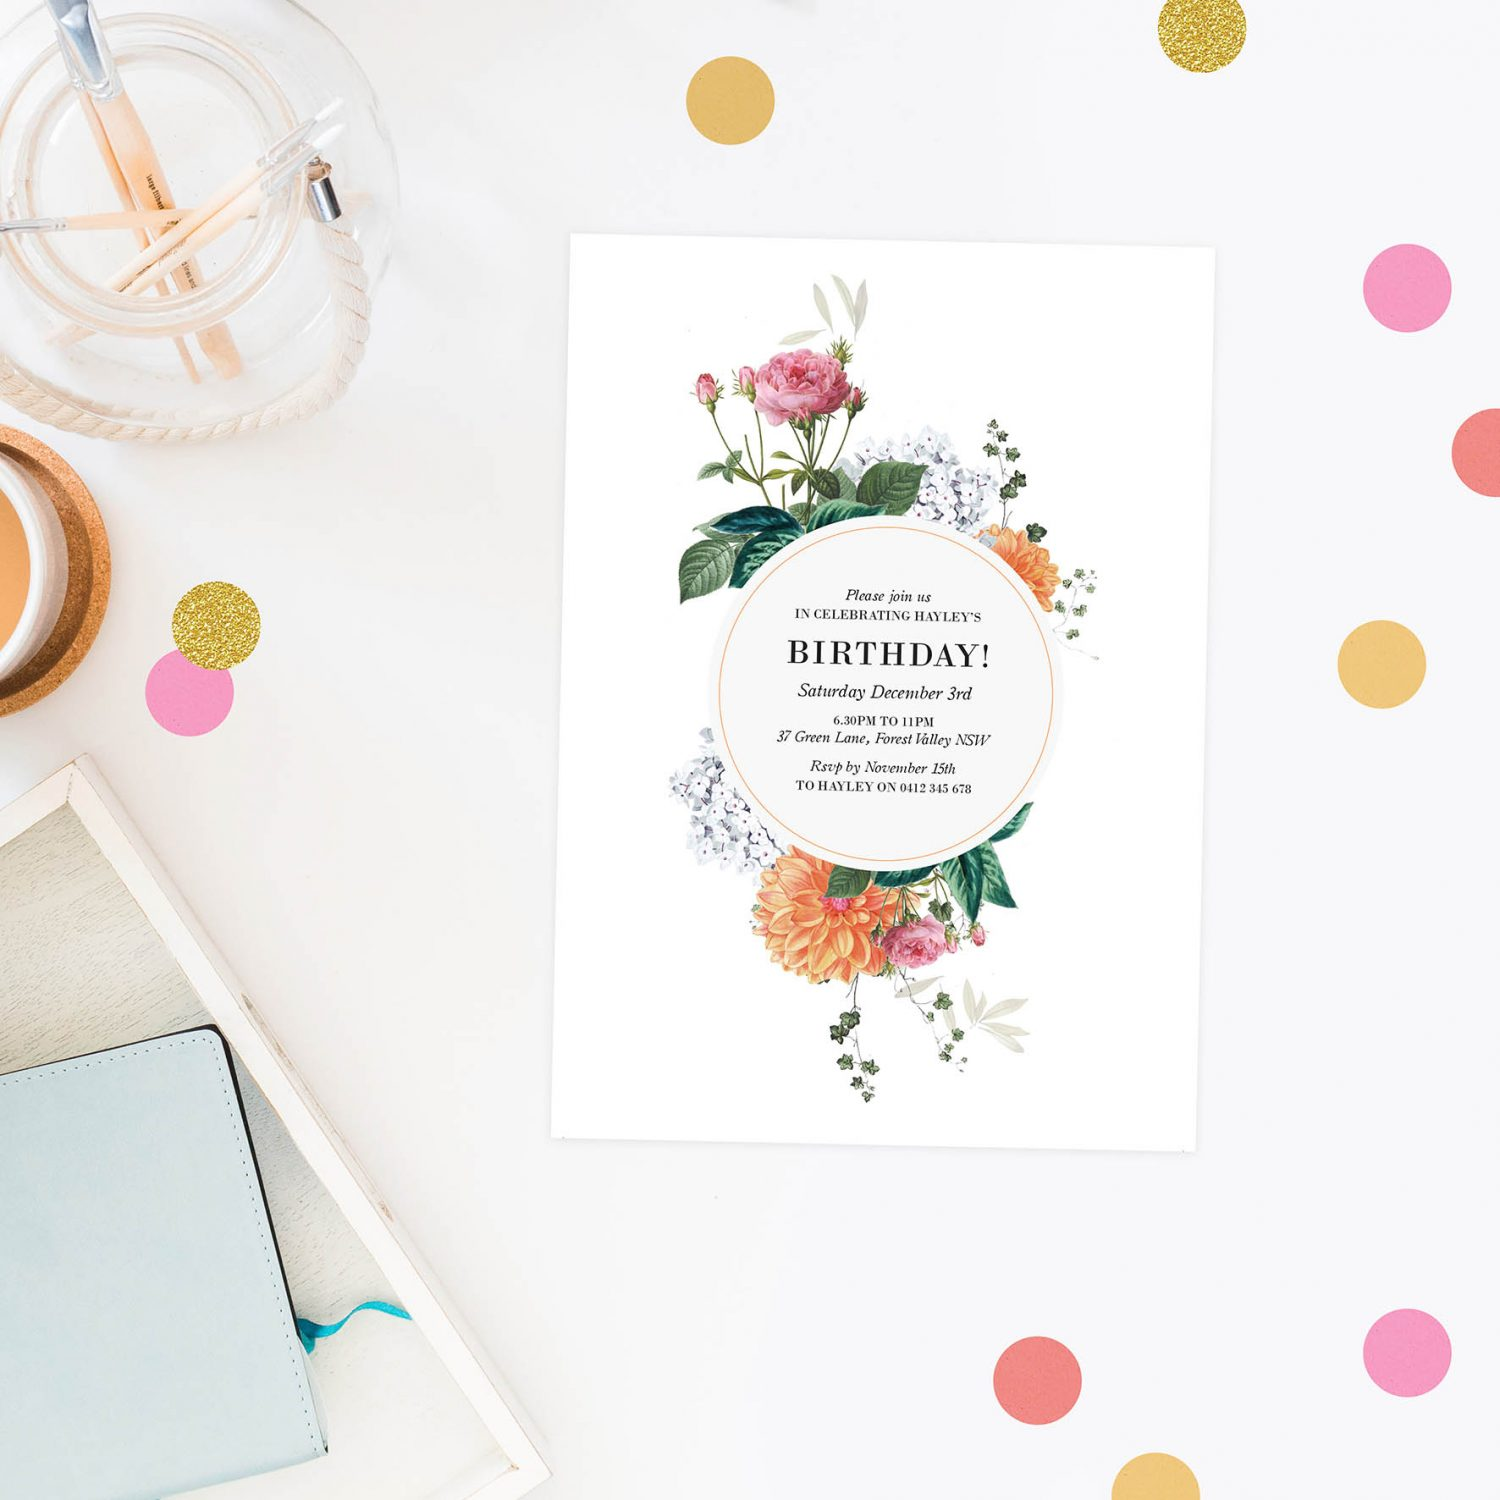 Floral Birthday Invitations Pink Peach Vintage Botanical Flowers Rose Roses Invites Australia Perth Sydney Melbourne